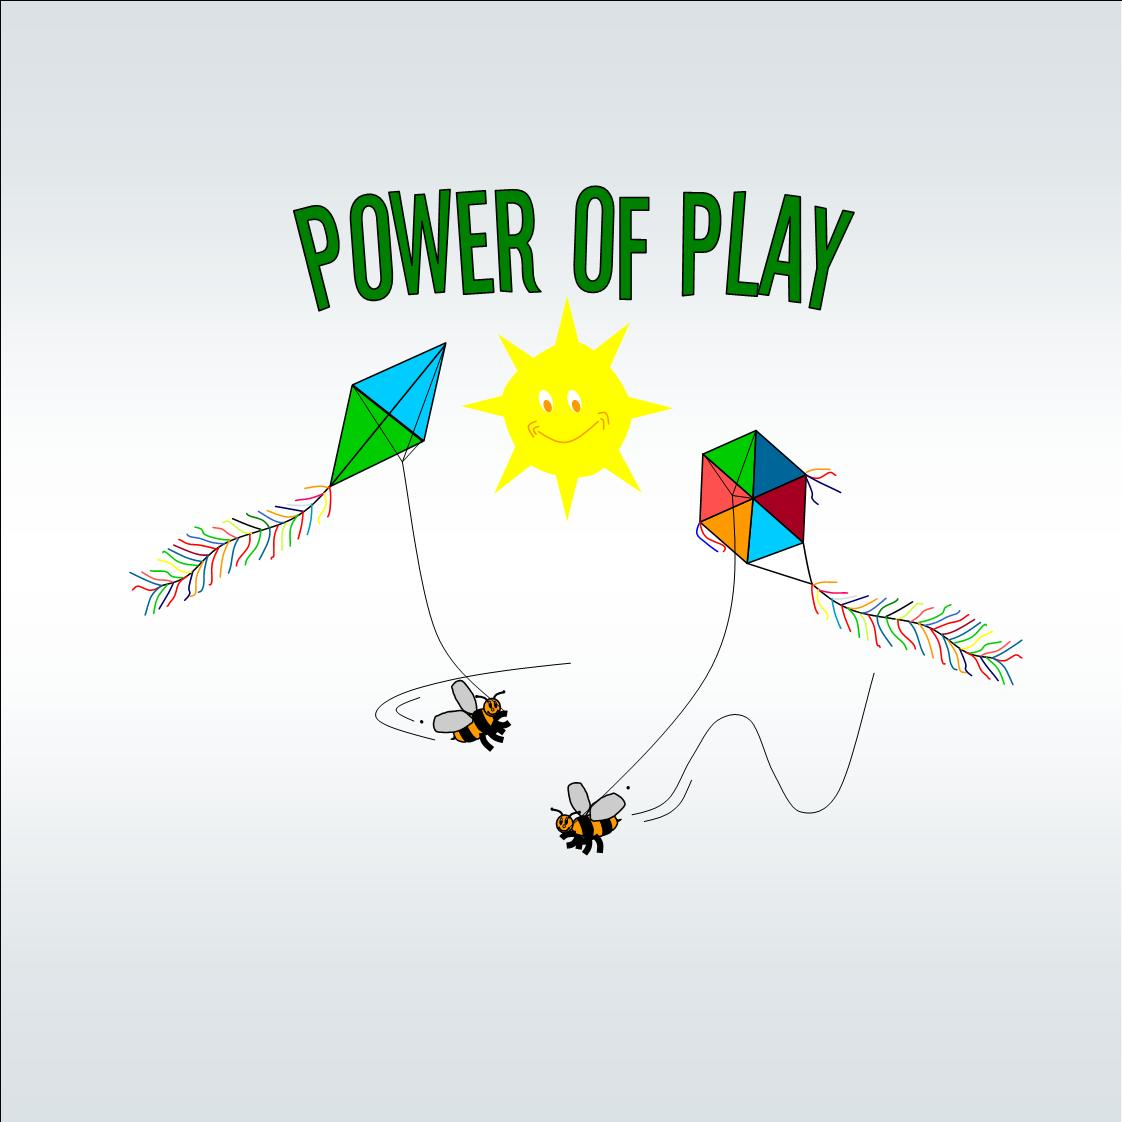 Logo Design by nk - Entry No. 47 in the Logo Design Contest Power Of Play Logo Design.